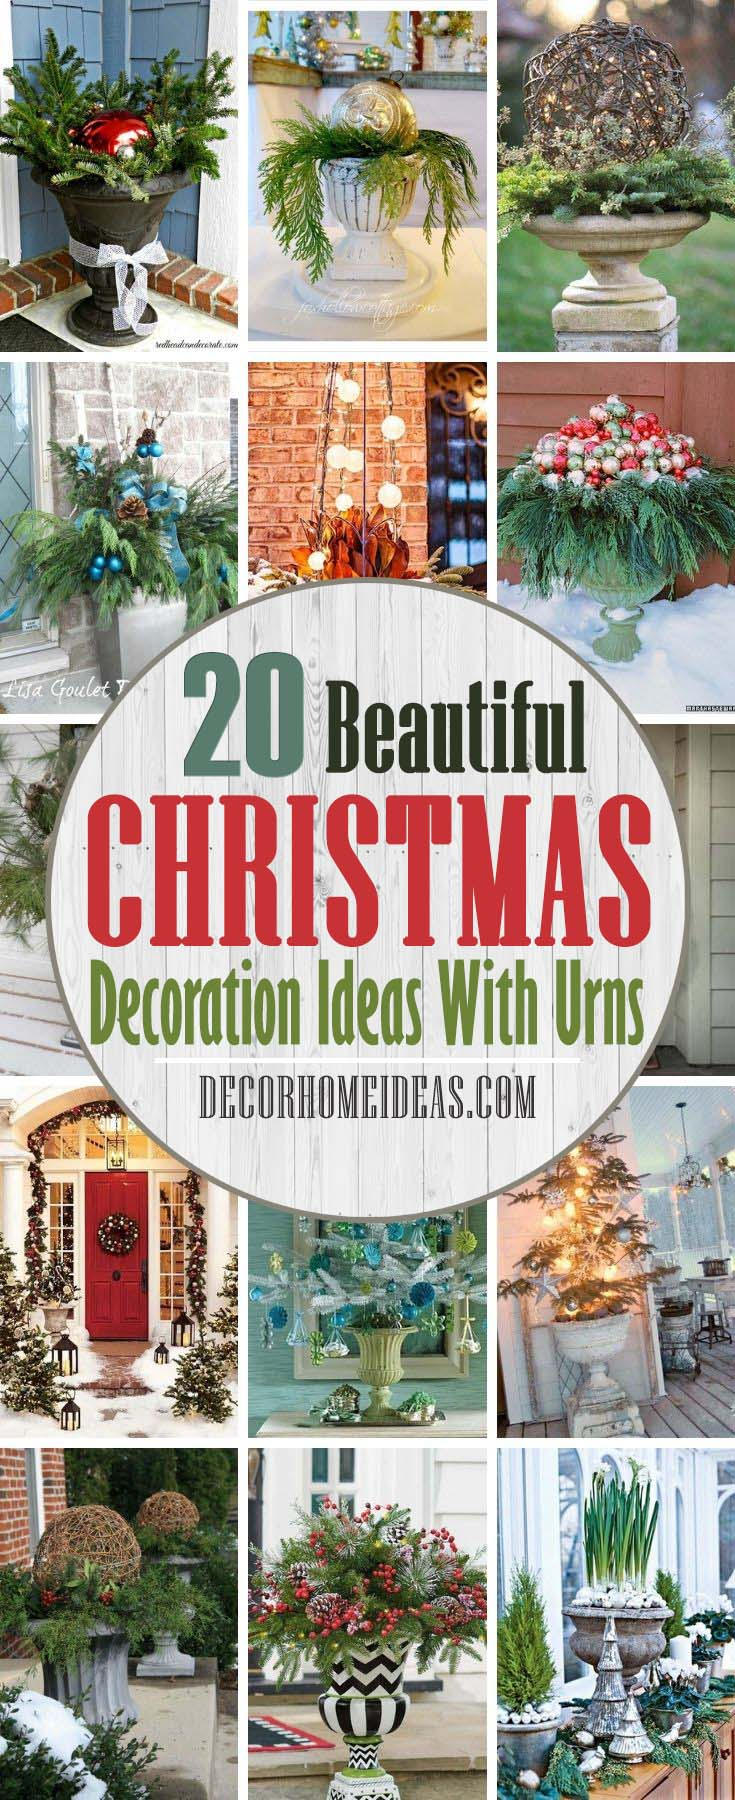 Best Ways To Decorate With Urns For Christmas. There is nothing as lovely as urns flanking a front door to amp up your curb appeal on Christmas and add to the welcoming feel of your home. #decorhomeideas